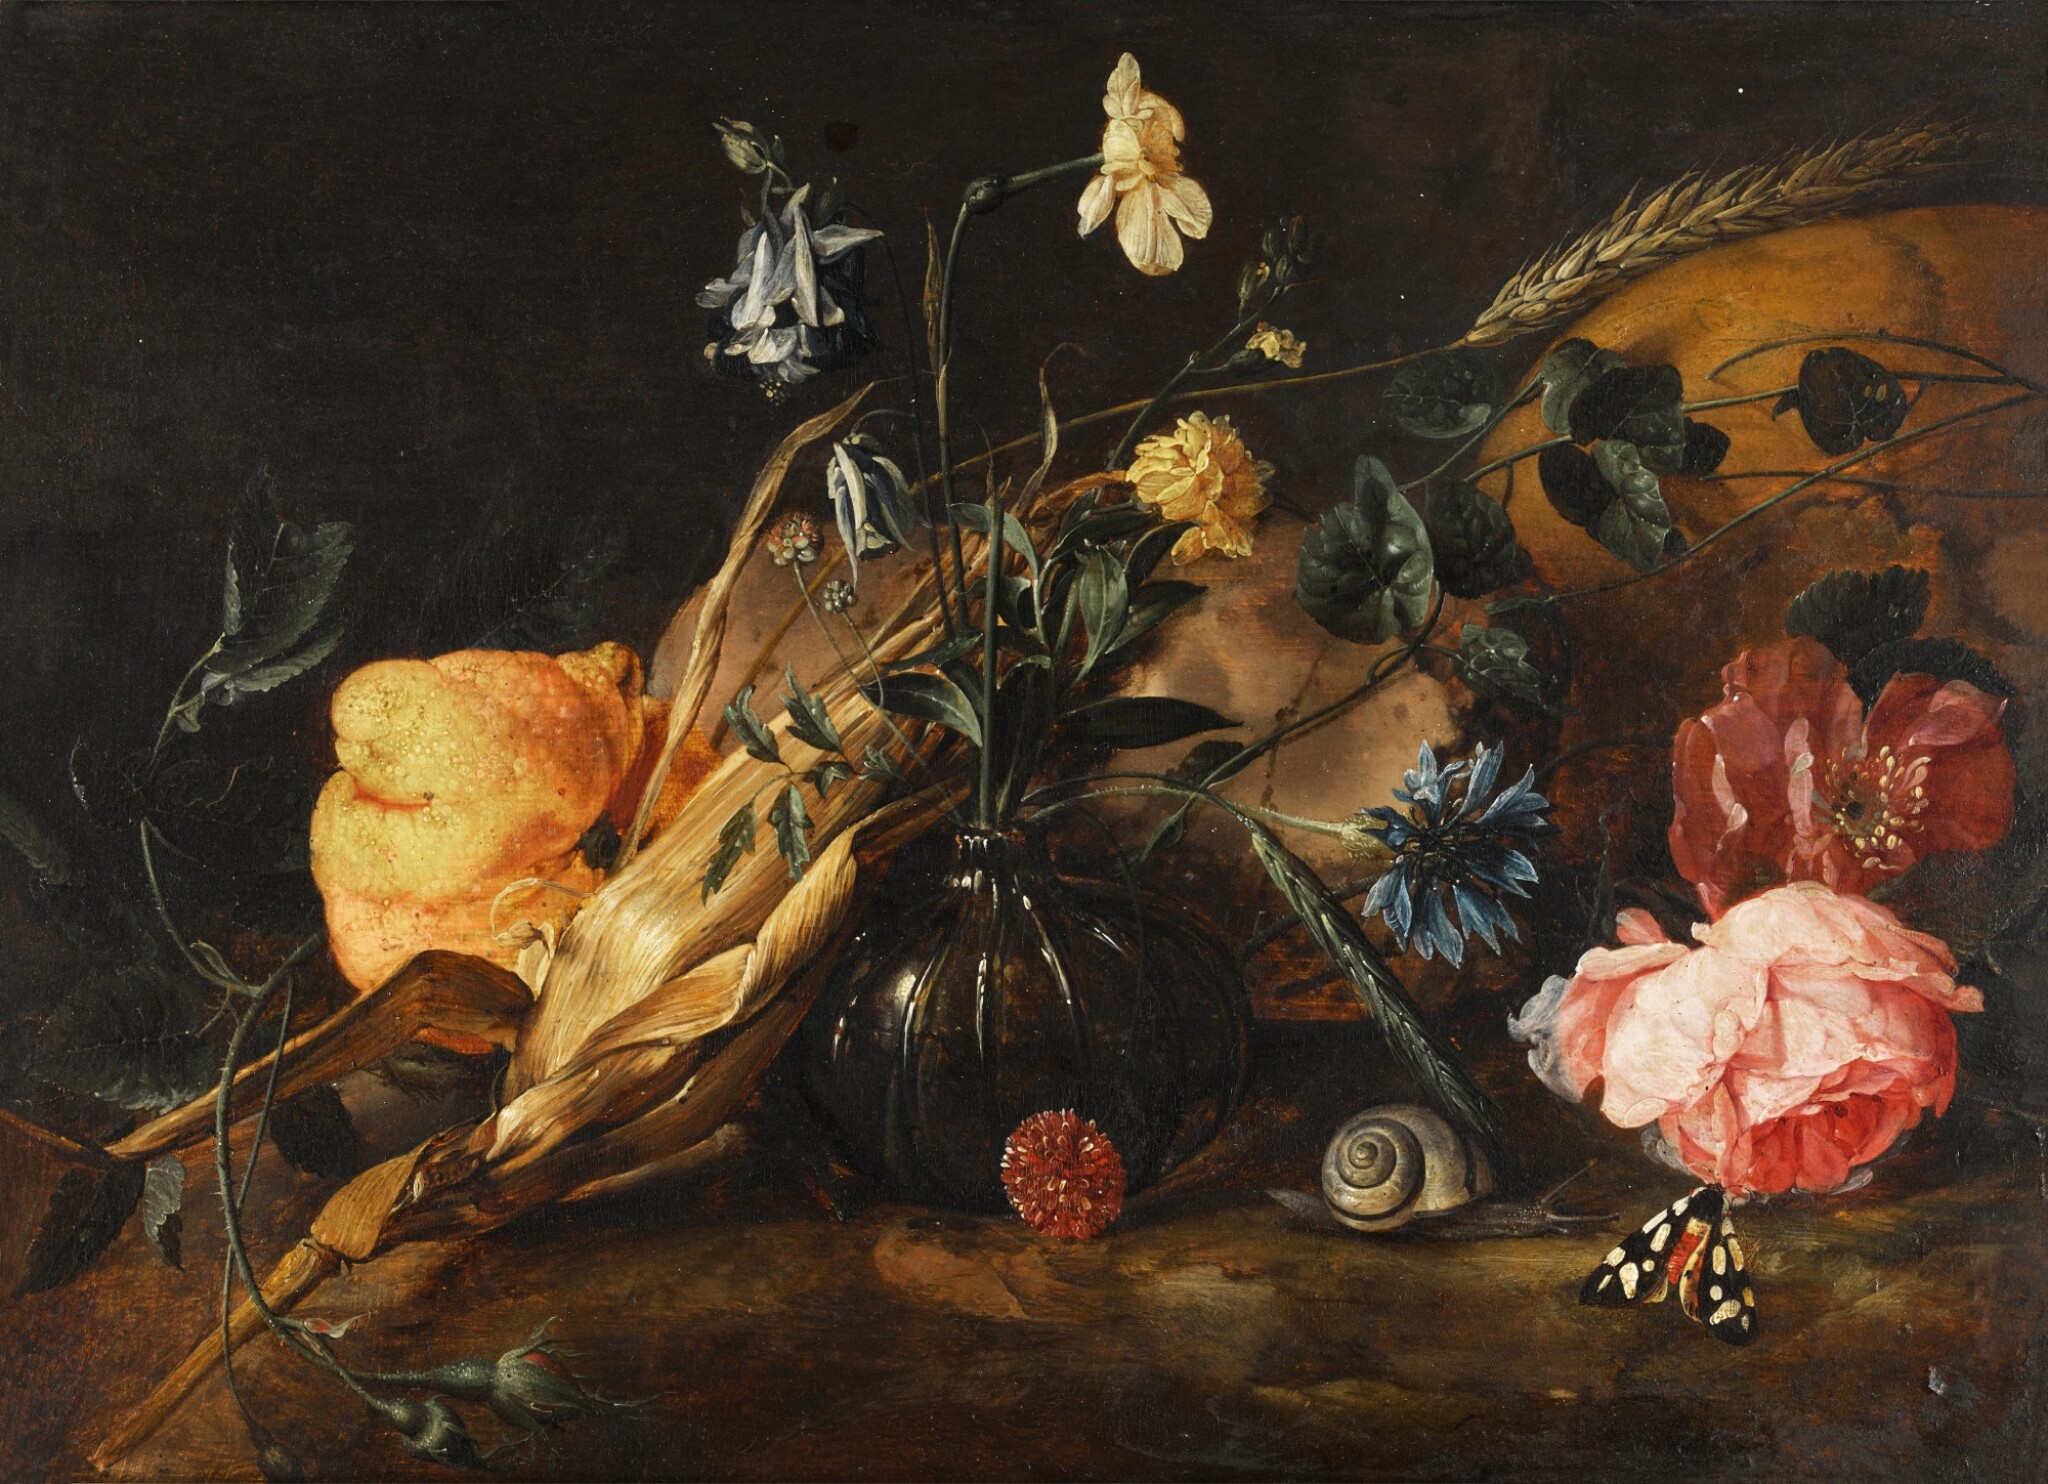 View full screen - View 1 of Lot 37. Still life with flowers in a glass vase, a lemon, an ear of corn, with a snail and butterflies beside a skull | 《靜物:玻璃瓶花與檸檬、玉米穗、蝸牛和骷髏旁的蝴蝶》.